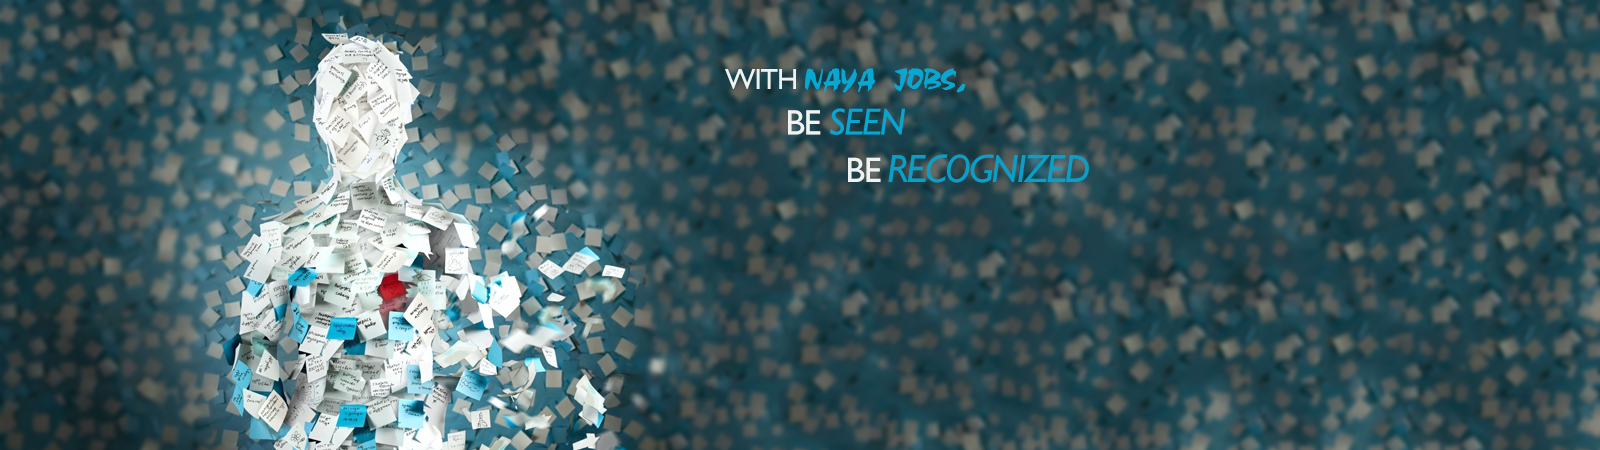 Recognised Recruitment services